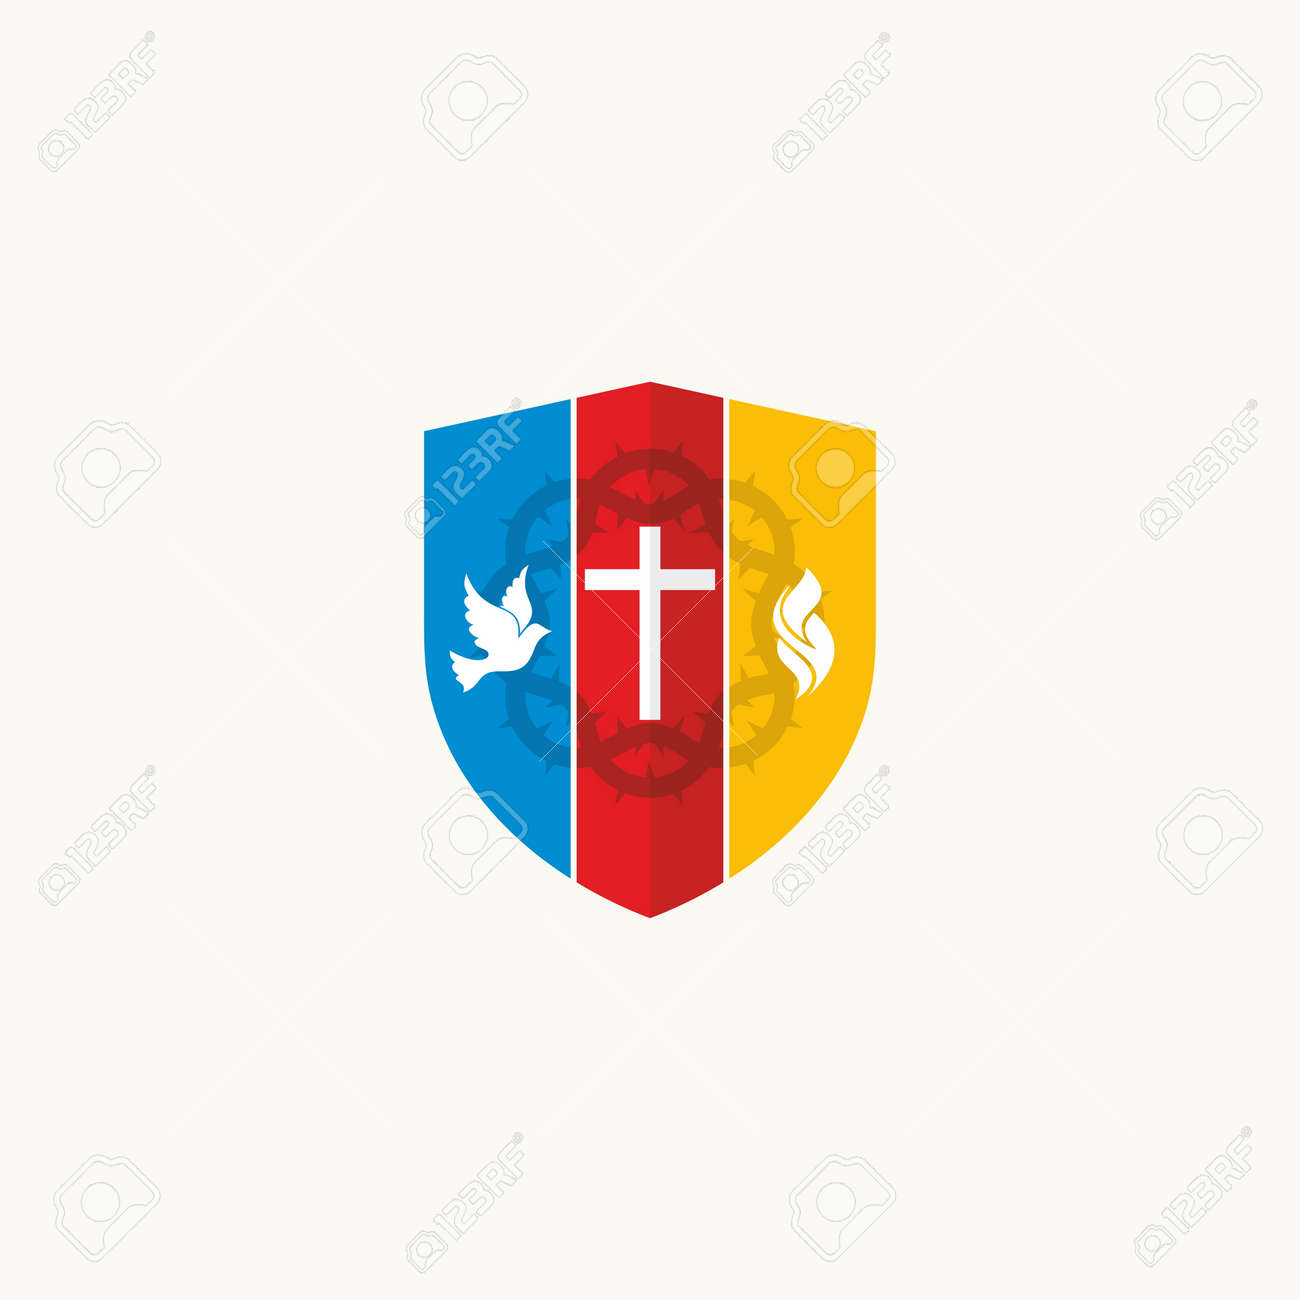 Church logo the cross a dove and flames royalty free cliparts church logo the cross a dove and flames stock vector 47998723 thecheapjerseys Gallery